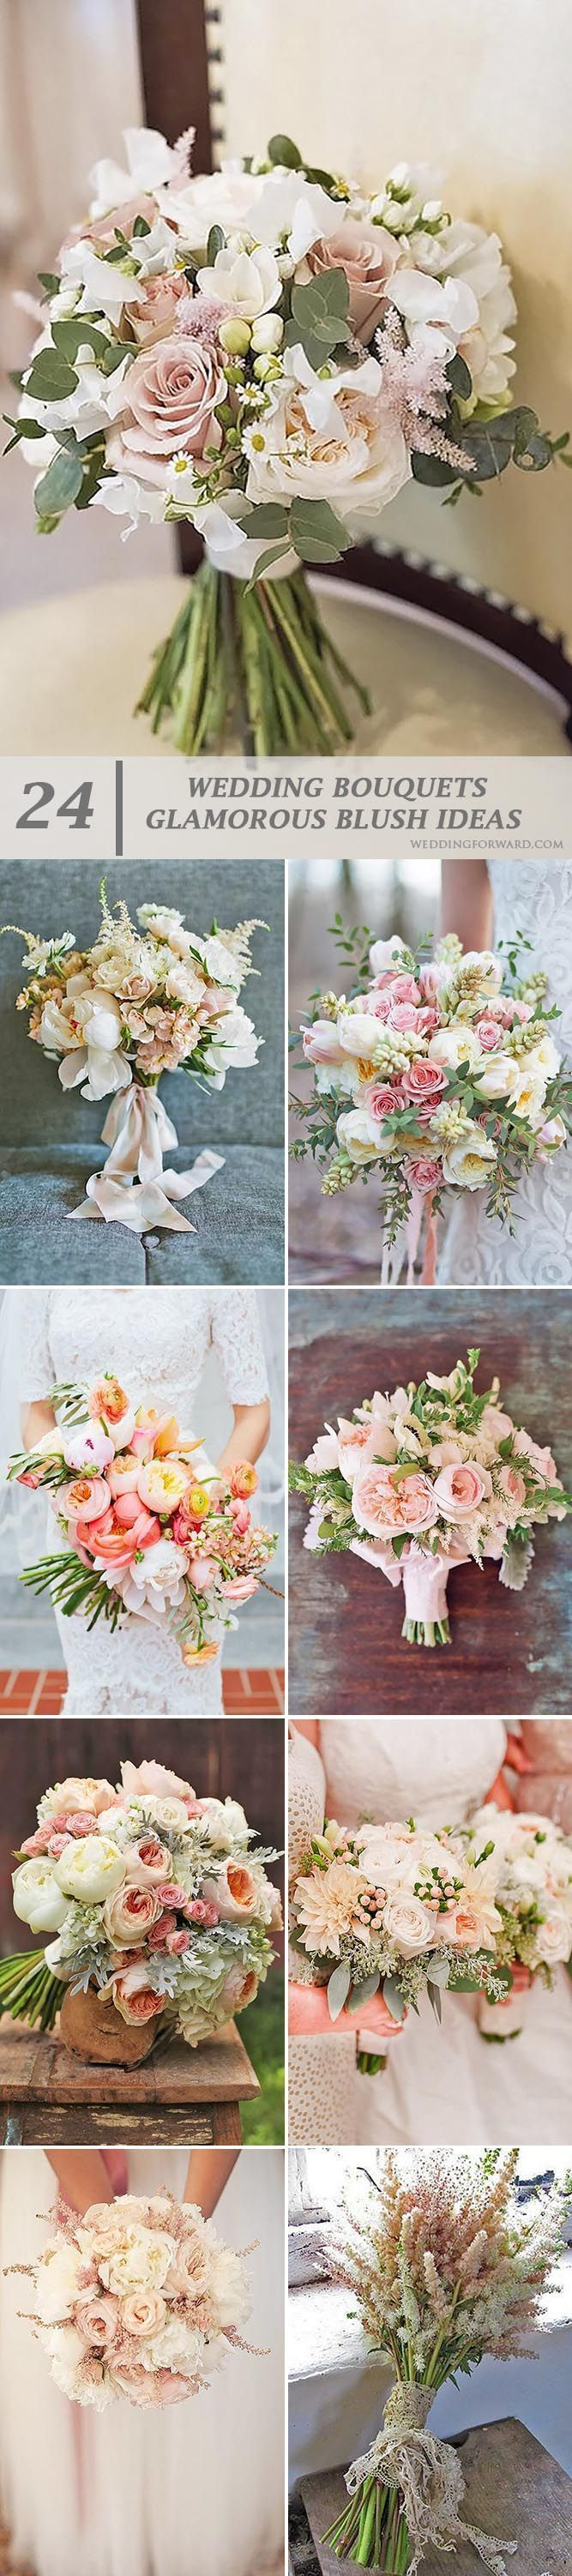 best sylvia day entwined with you images on pinterest